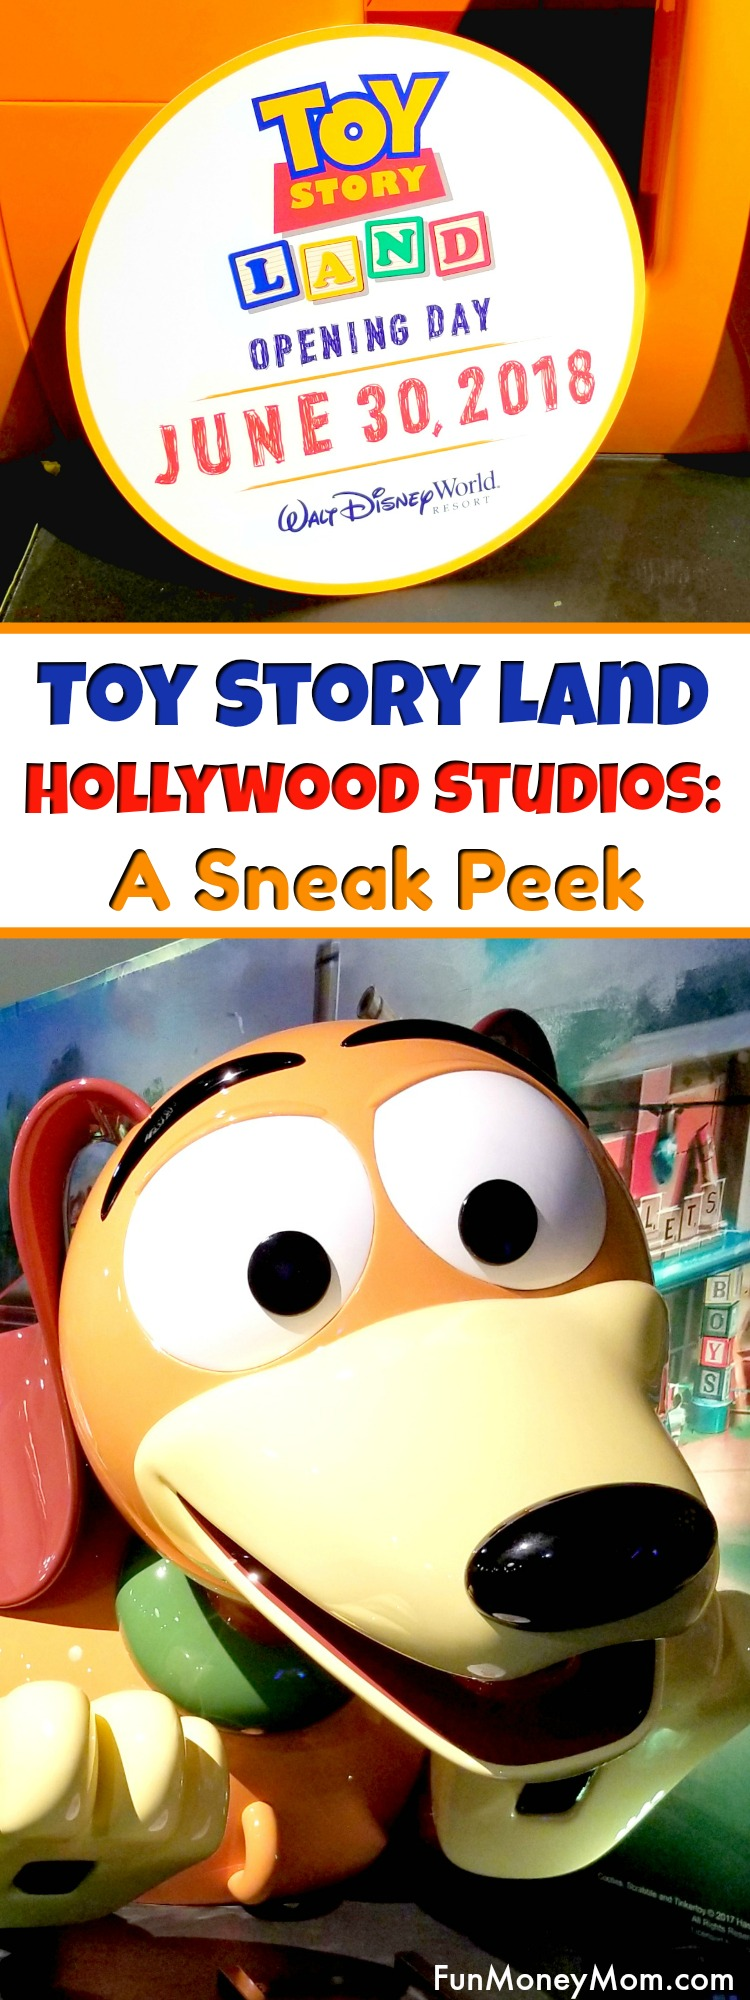 Toy Story Land Opening - Find out what you can expect to see when Toy Story Land opens at Hollywood Studios in Walt Disney World. You'll definitely want to plan your Walt Disney World vacation accordingly. #ToyStoryLand #WaltDisneyWorld #HollywoodStudios